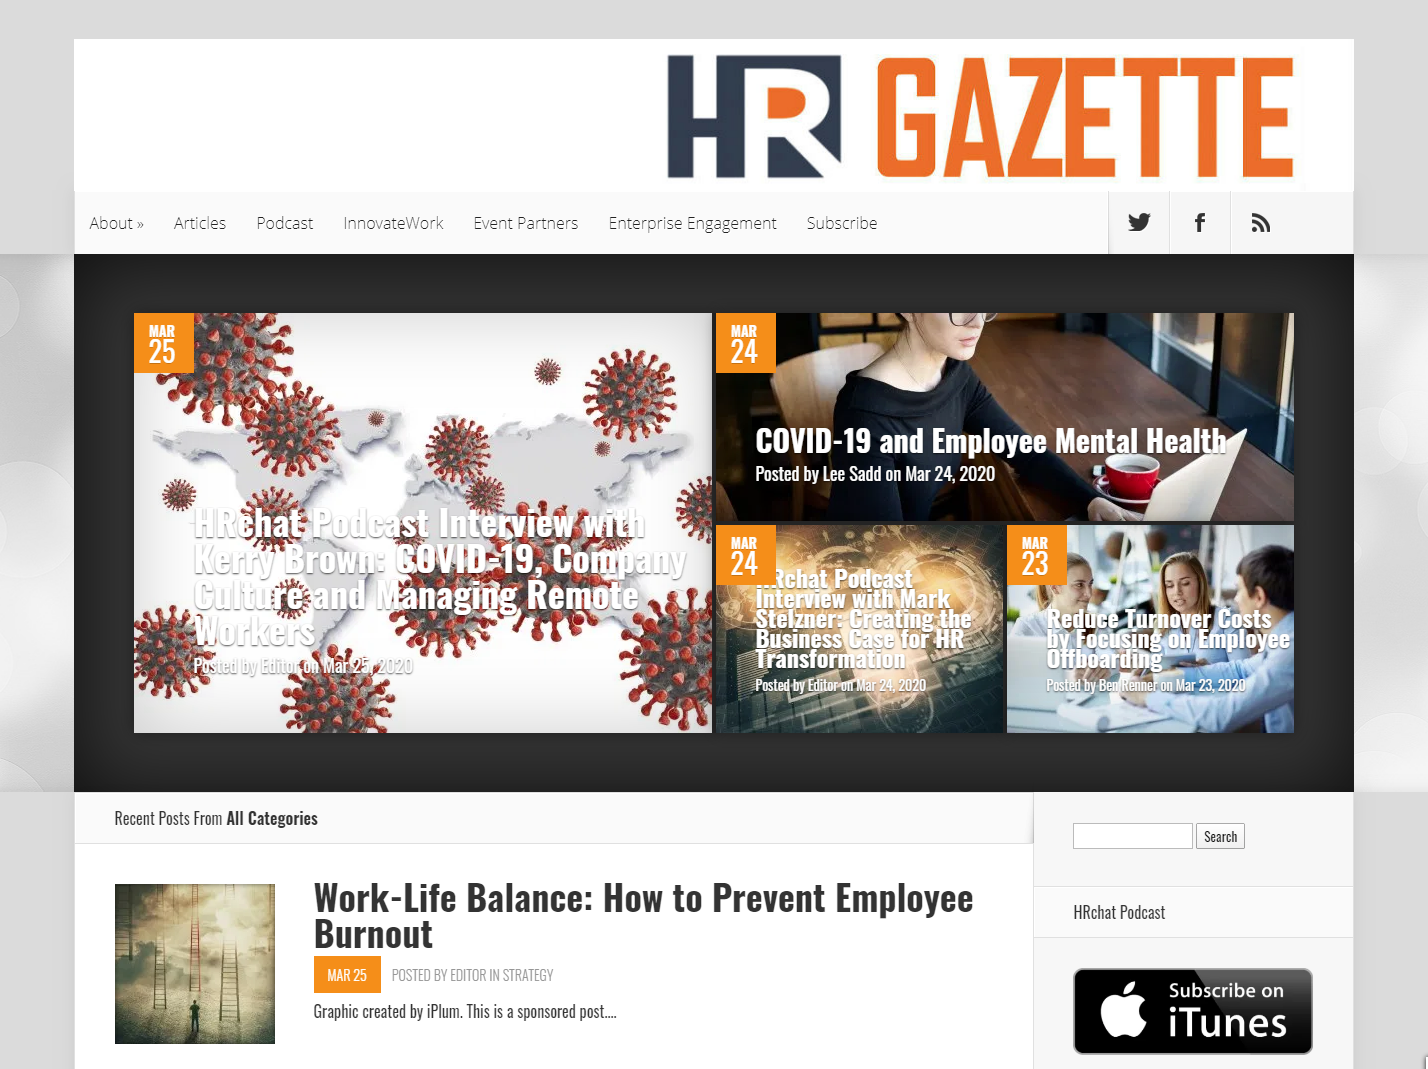 HR Gazette